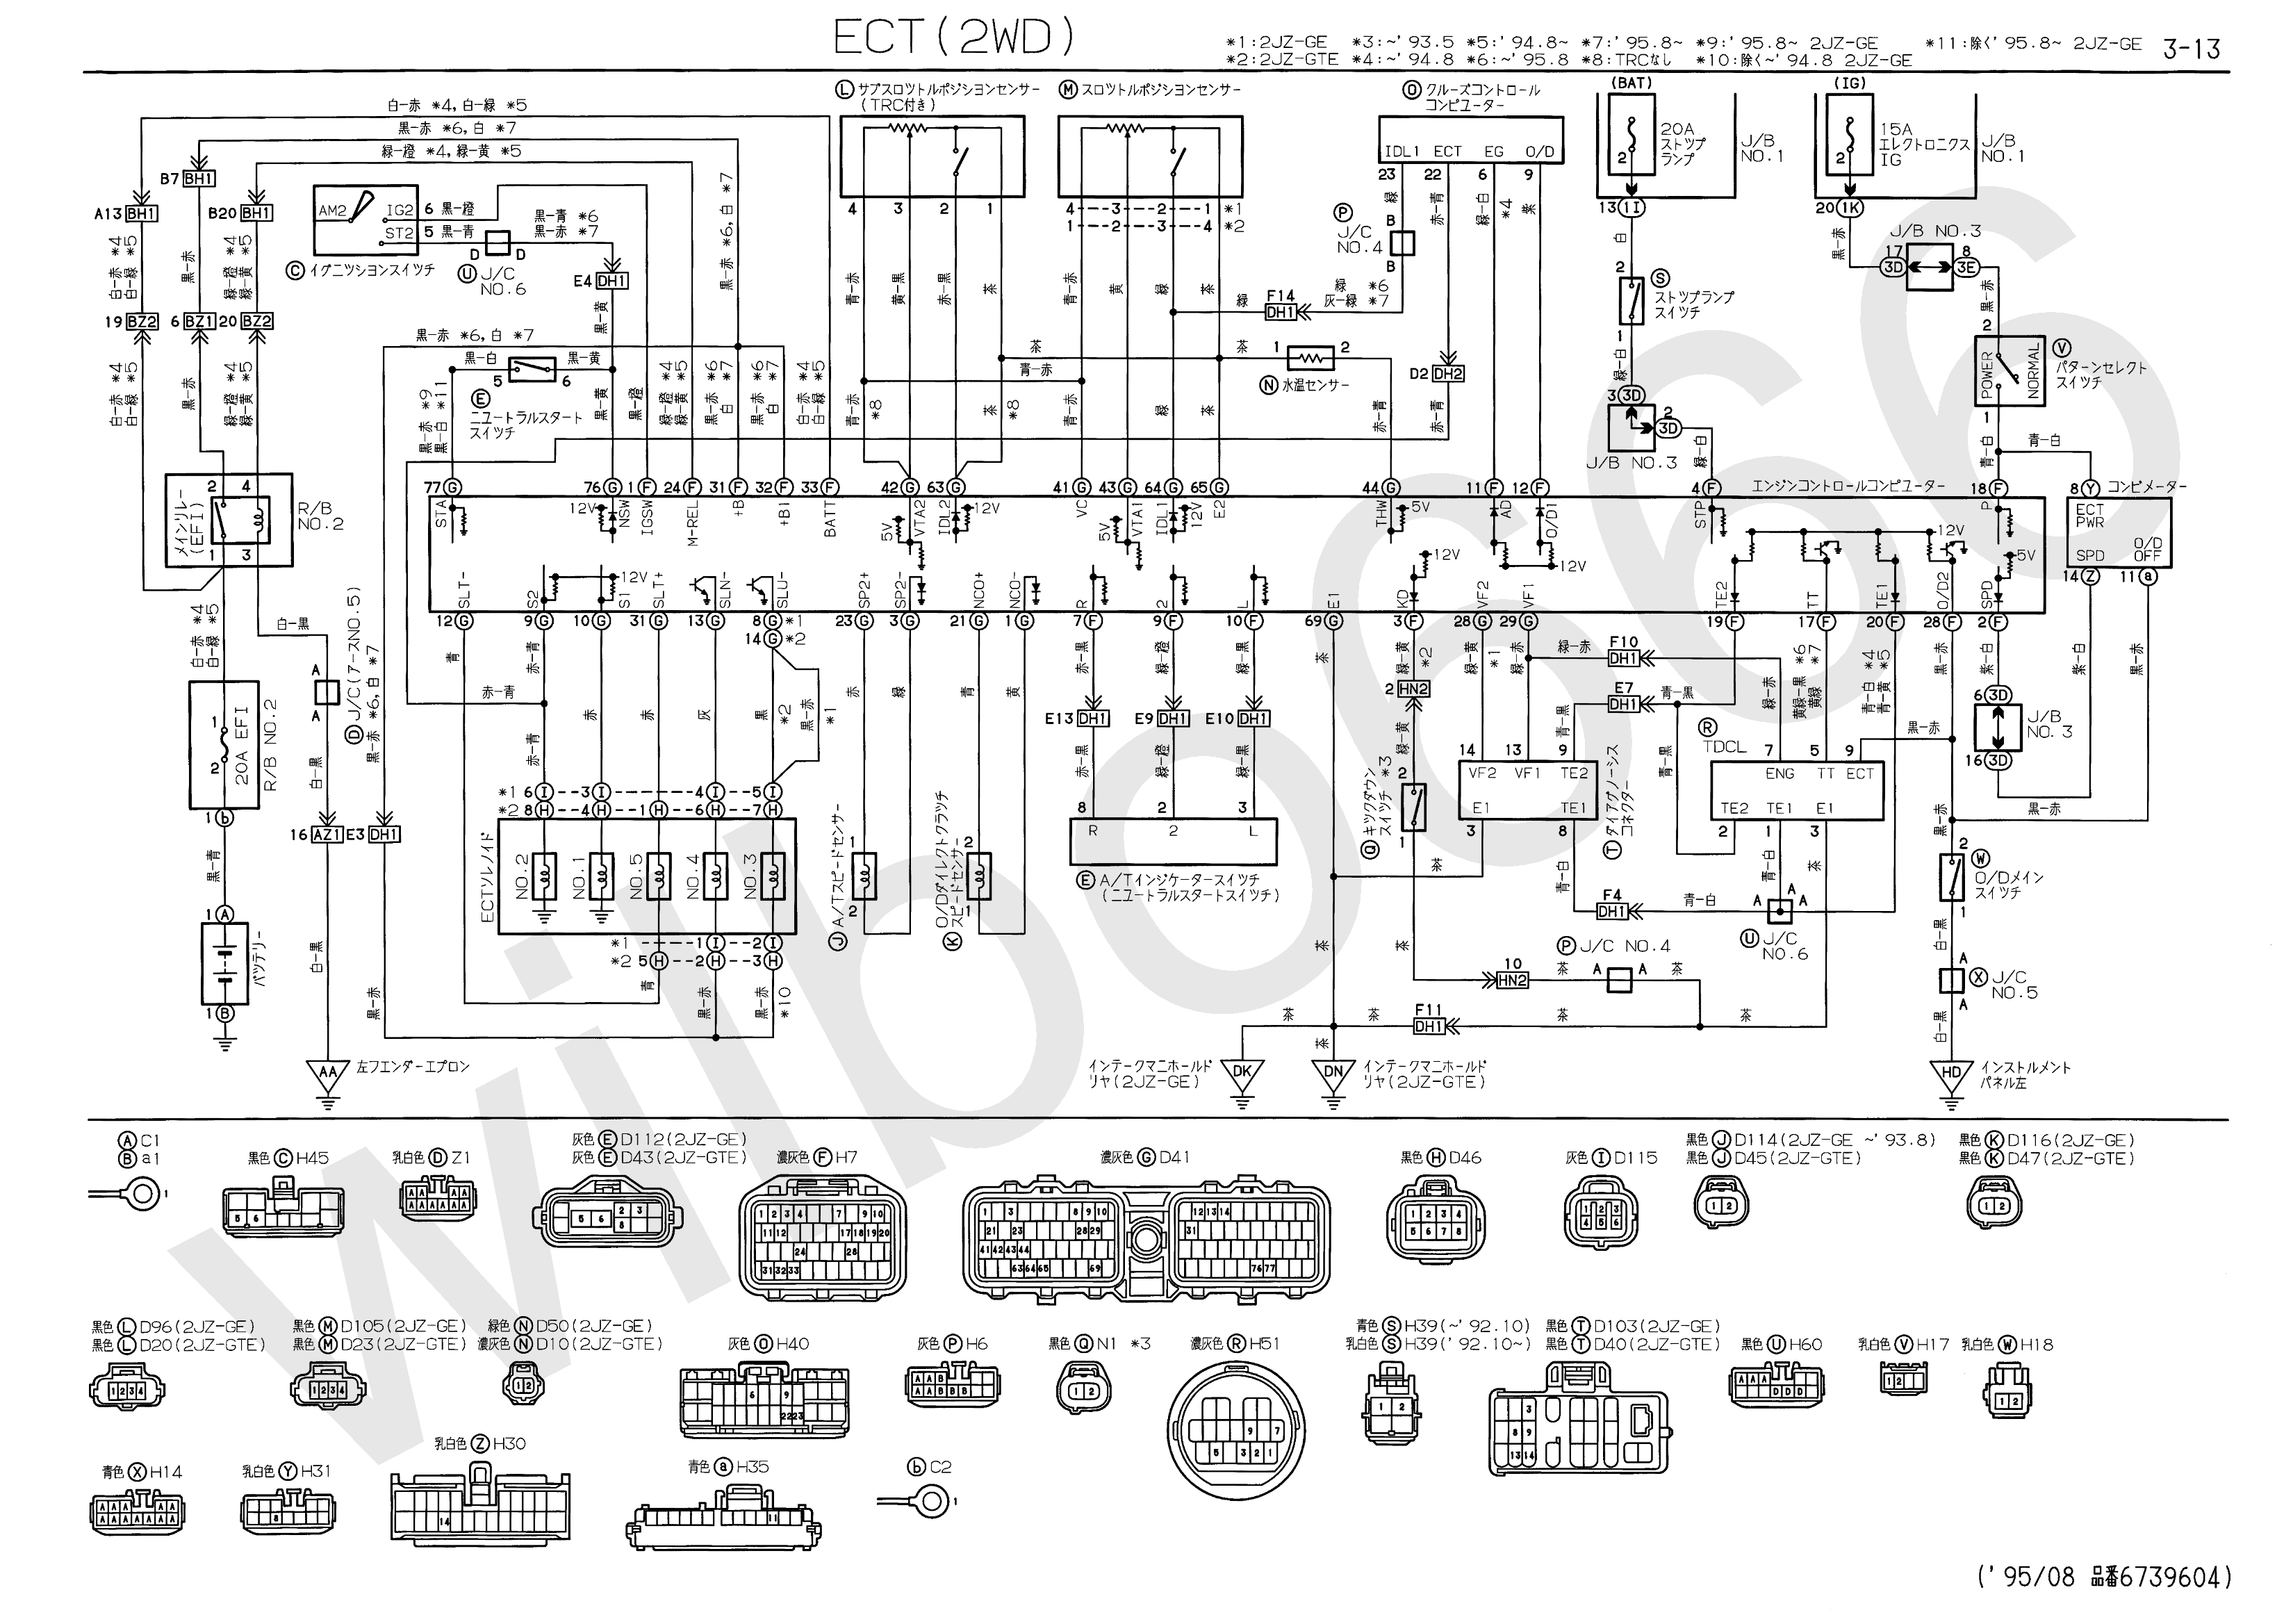 JZS14%23%2C+UZS14%23+Electrical+Wiring+Diagram+6739604+3 13 toyota aurion wiring diagram manual wiring diagram simonand 1999 toyota camry fuse box at alyssarenee.co